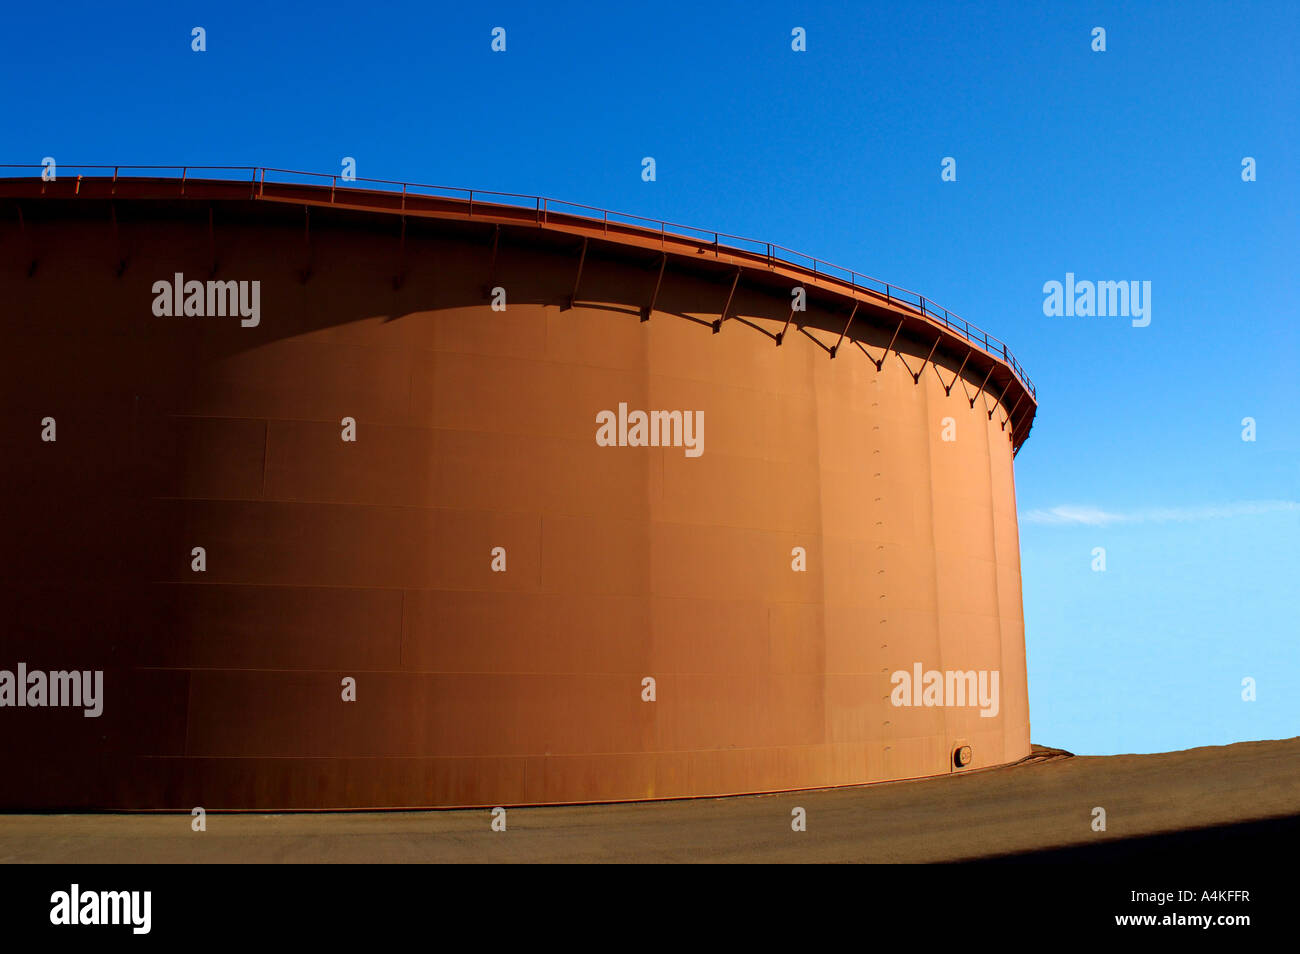 Oil Tank #1: brown oil tank, late afternoon - Stock Image